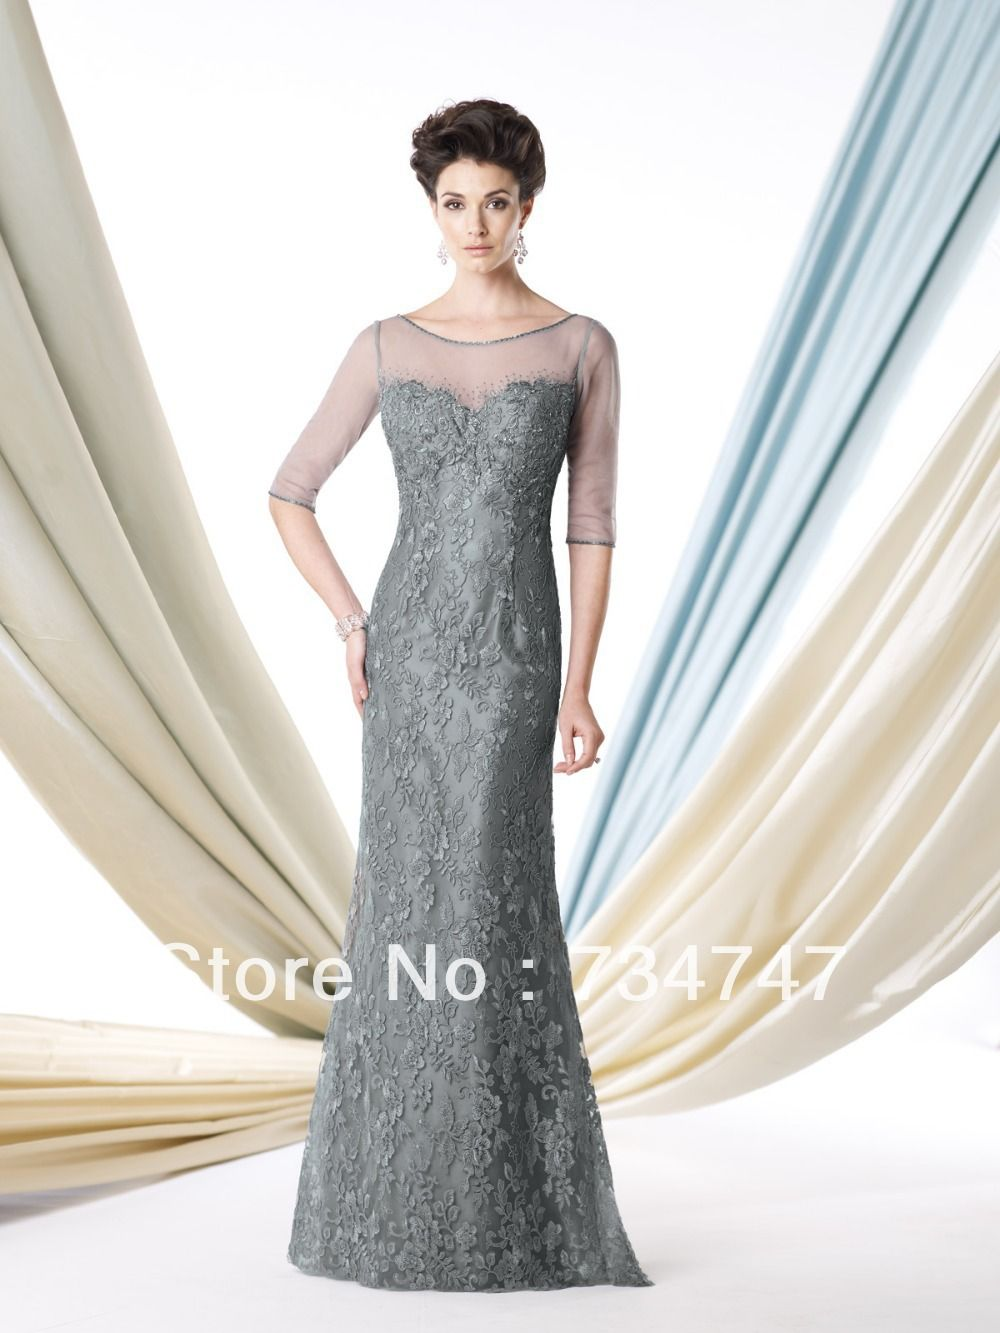 Mothers dresses for a wedding  Elegant Charming ALine Mother of the Bride Dresses Formal Gown